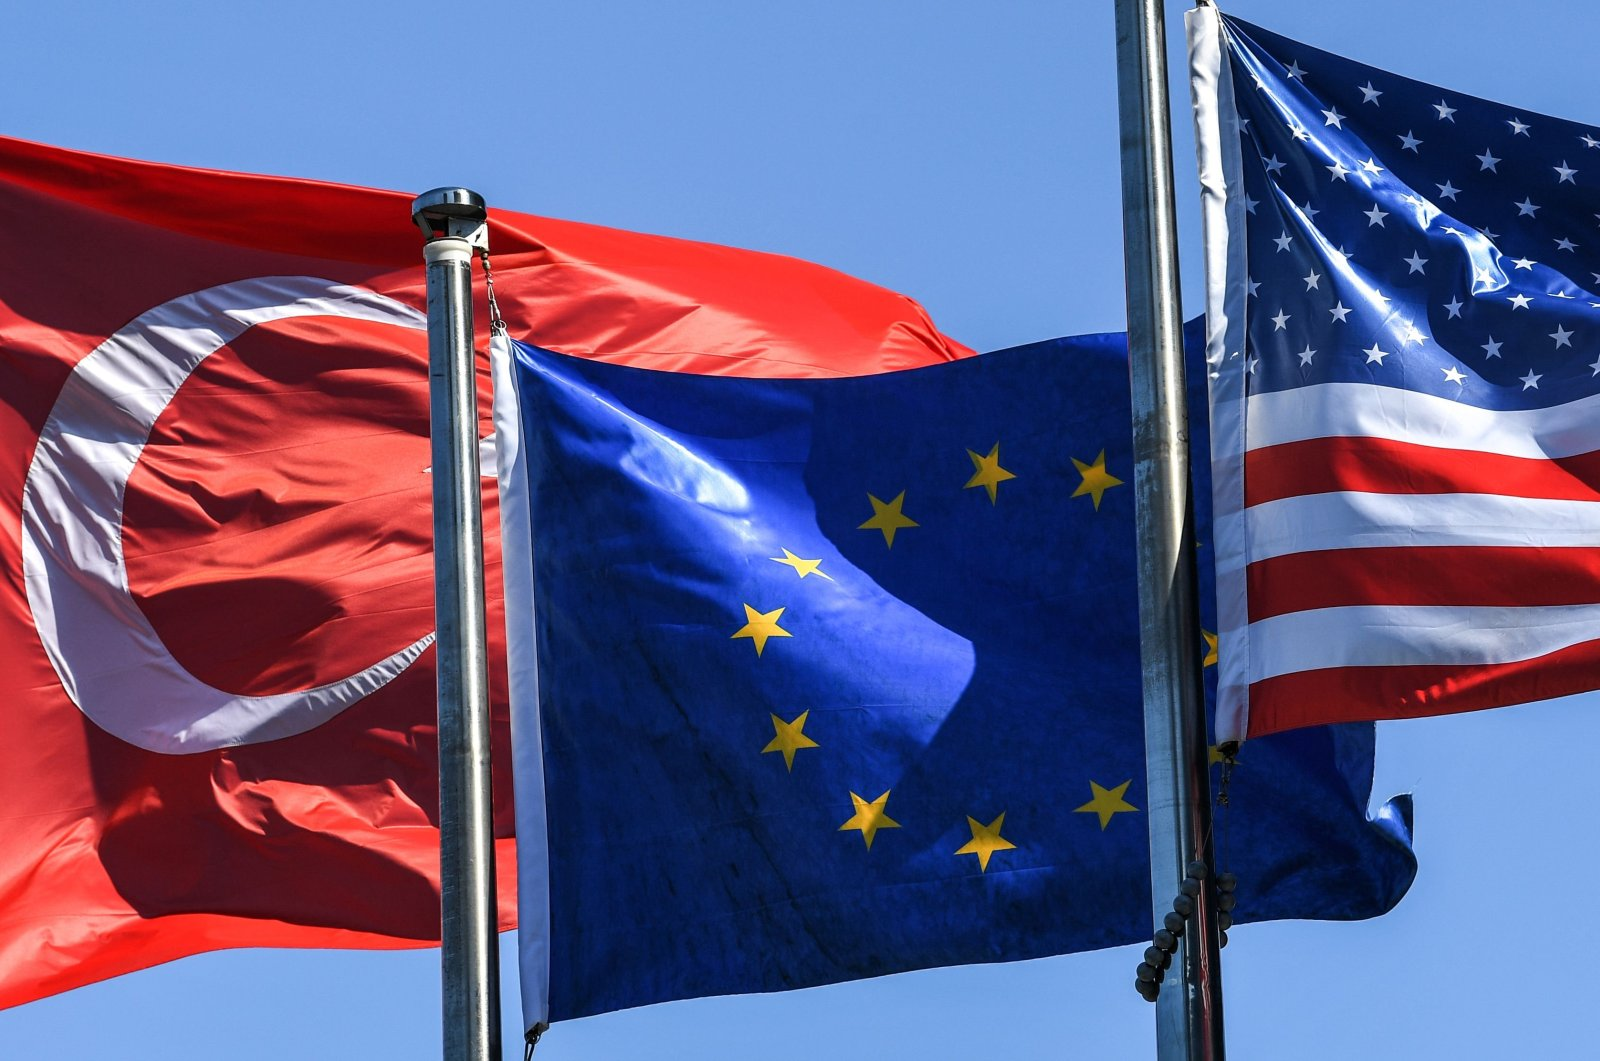 The flags of Turkey, the European Union and the U.S. wave in the wind in the Maslak quarter, Istanbul, Turkey, Aug. 15, 2018.